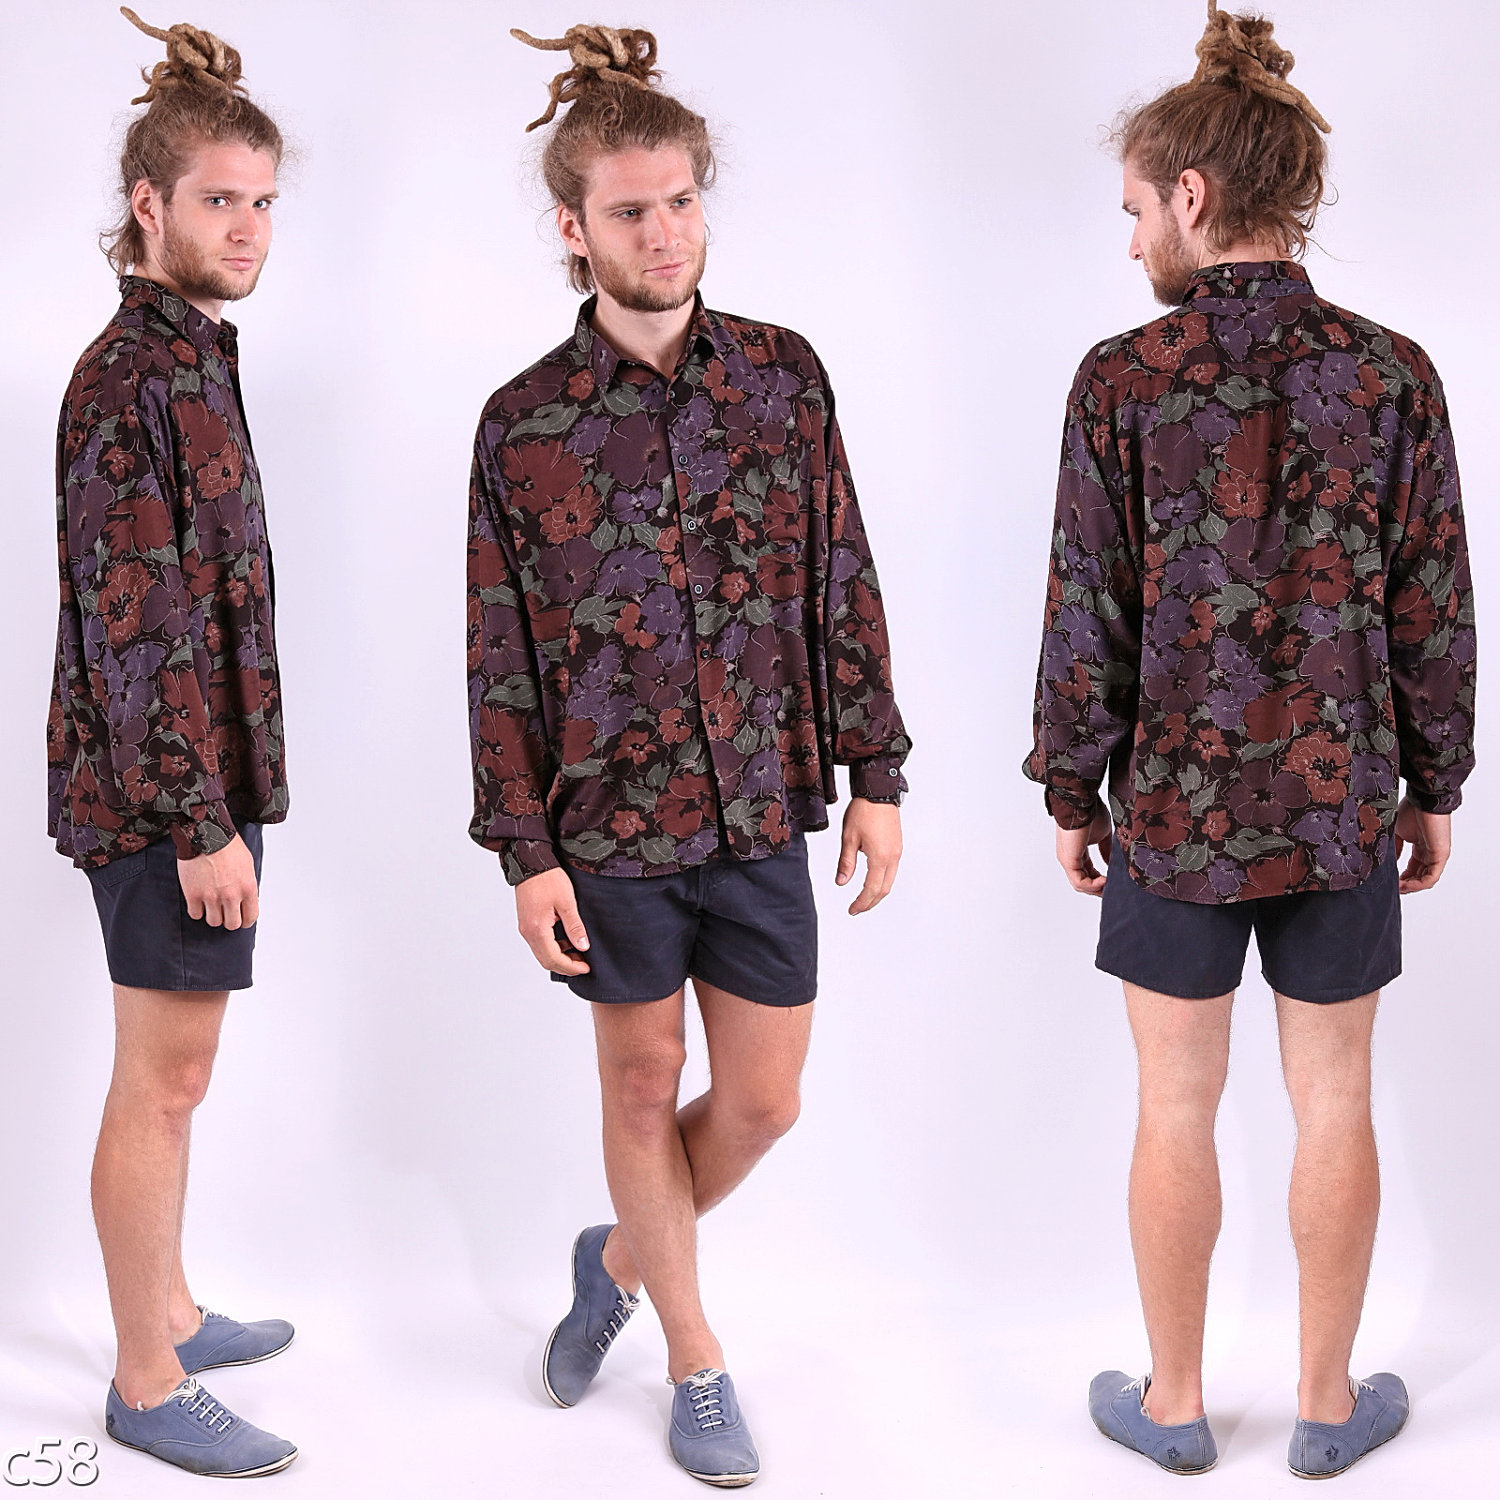 6f3144003a7 dreds and floral shirt. Floral print